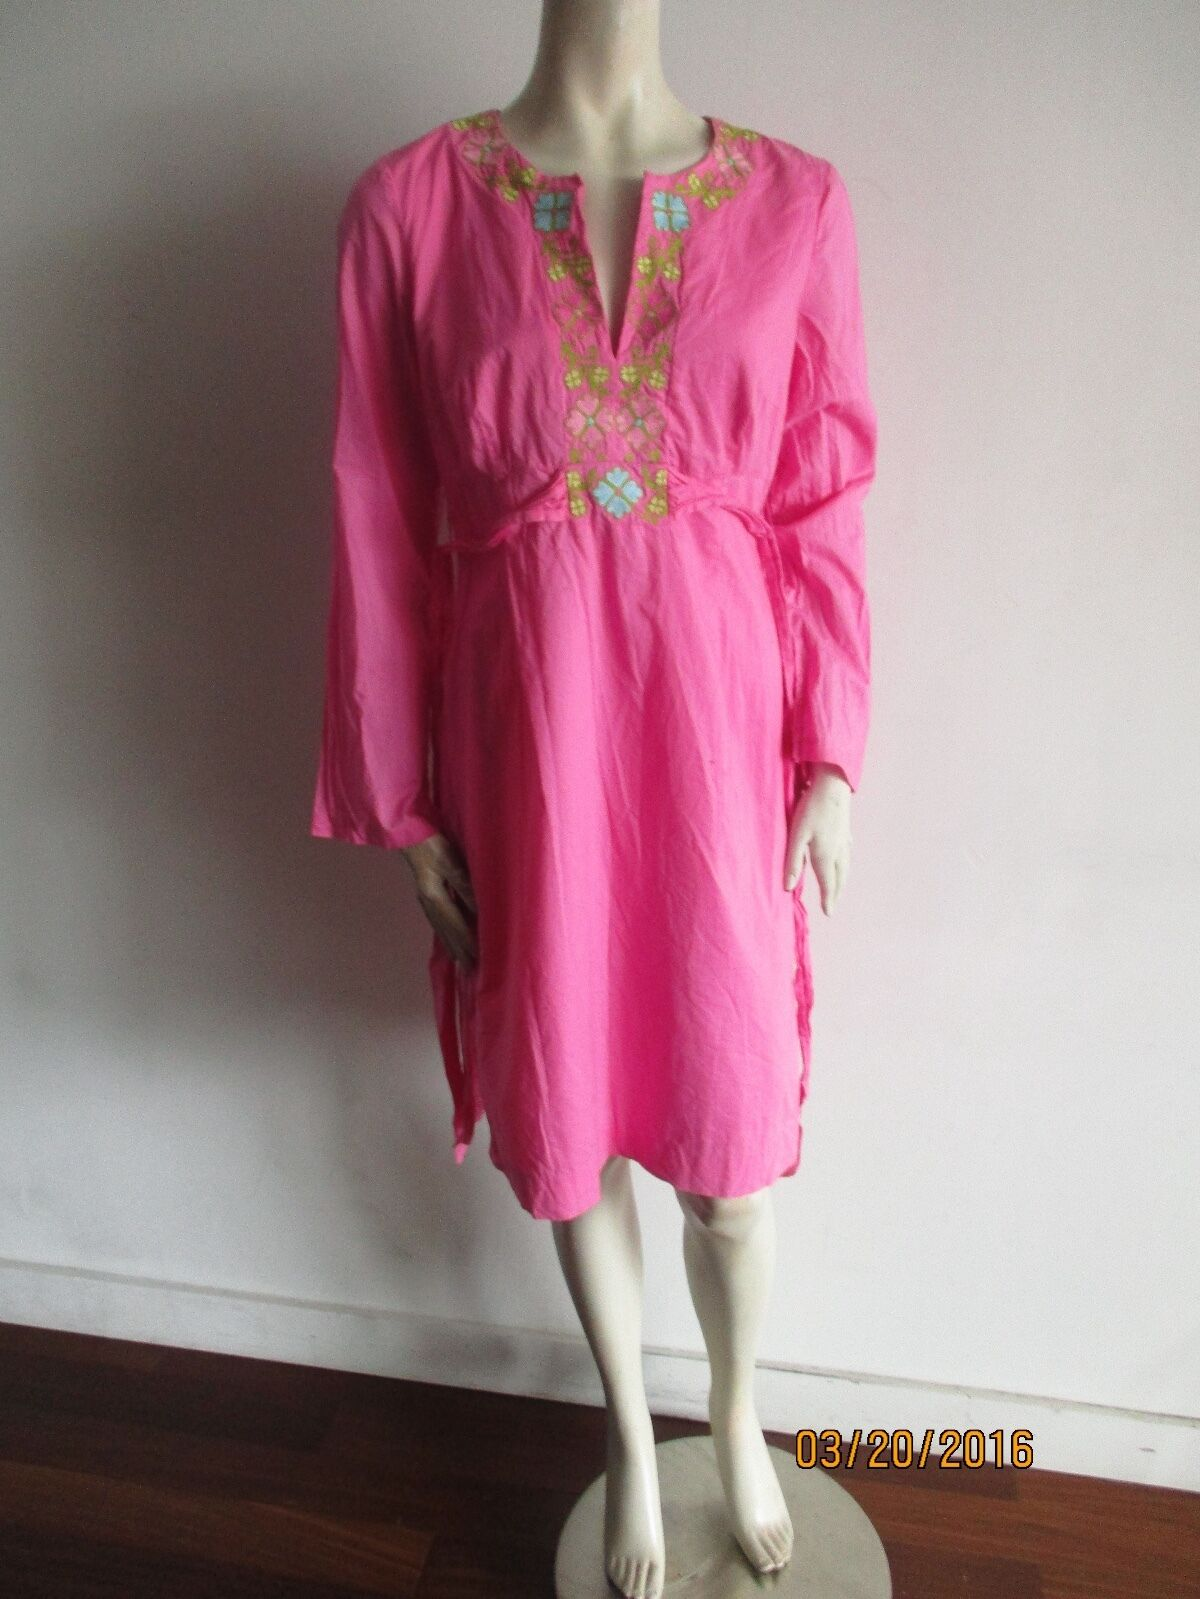 LILLY PULITZER CAFTAN DRESS SIZE 8 8 8 PINK  BELTED, LINED,100% COTTON ad5eaf